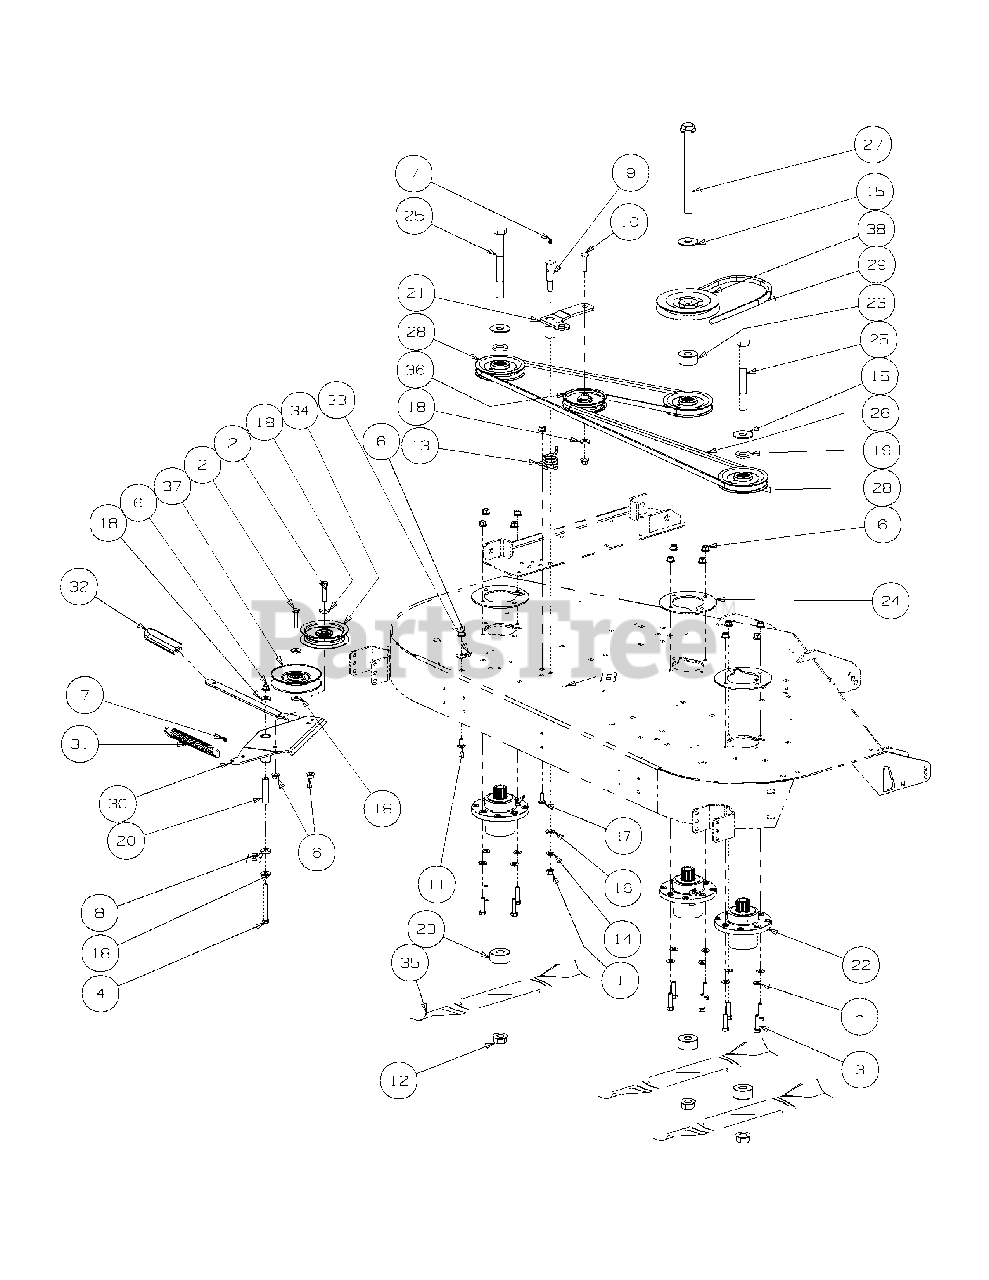 Cub Cadet Parts on the Deck Spindle Assembly Diagram for